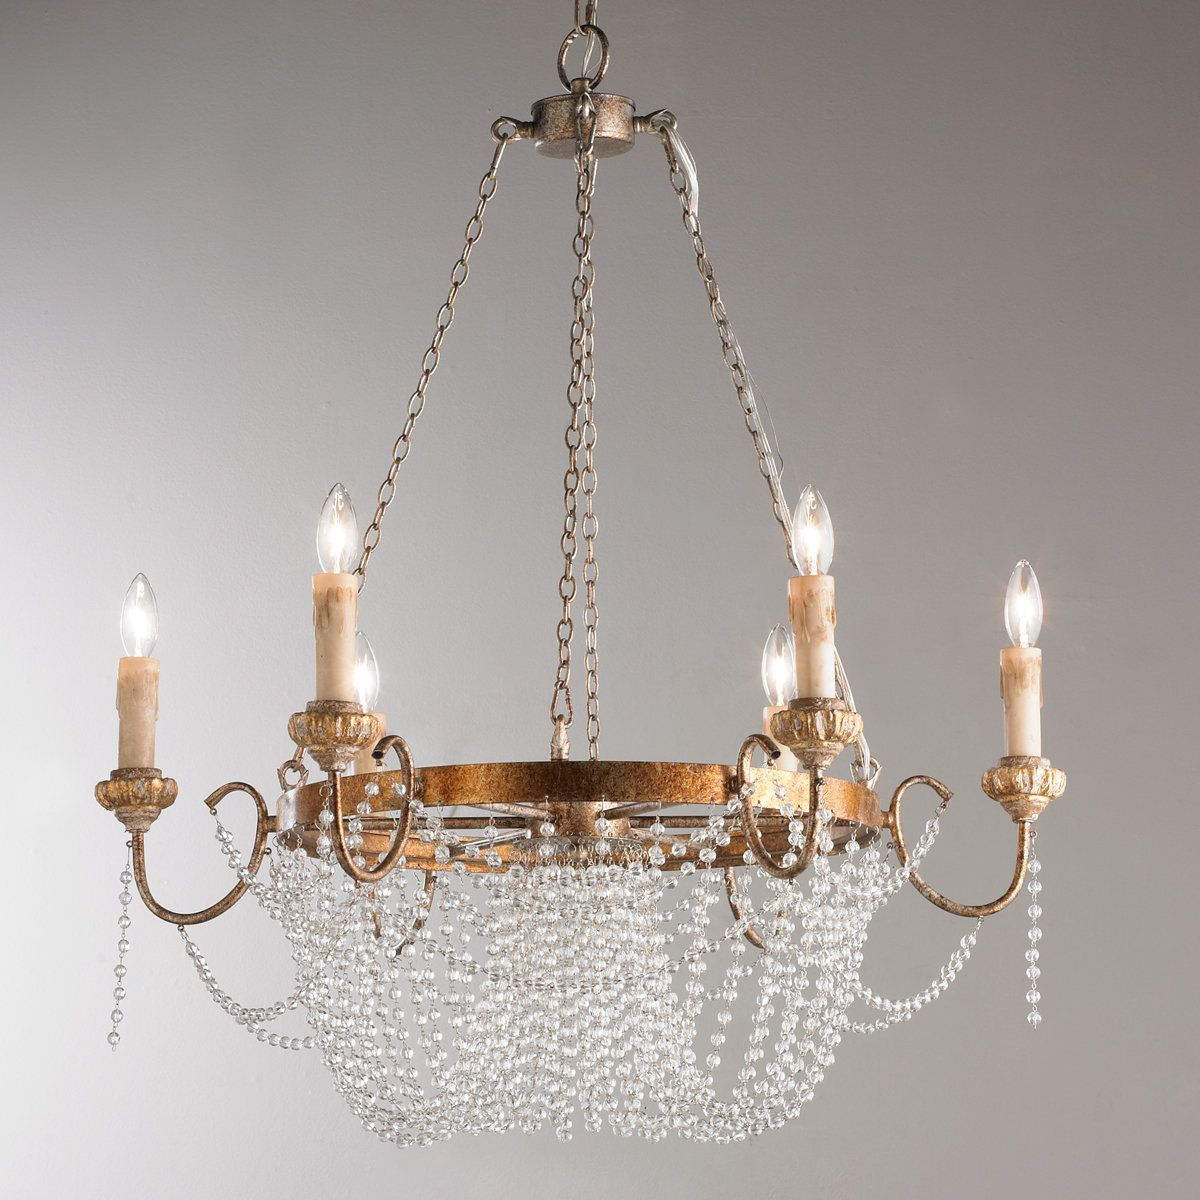 Crystal Draped Iron Chandelier In 2021 Iron Chandeliers Crystal Chandelier Beaded Chandelier Metal chandelier with crystals